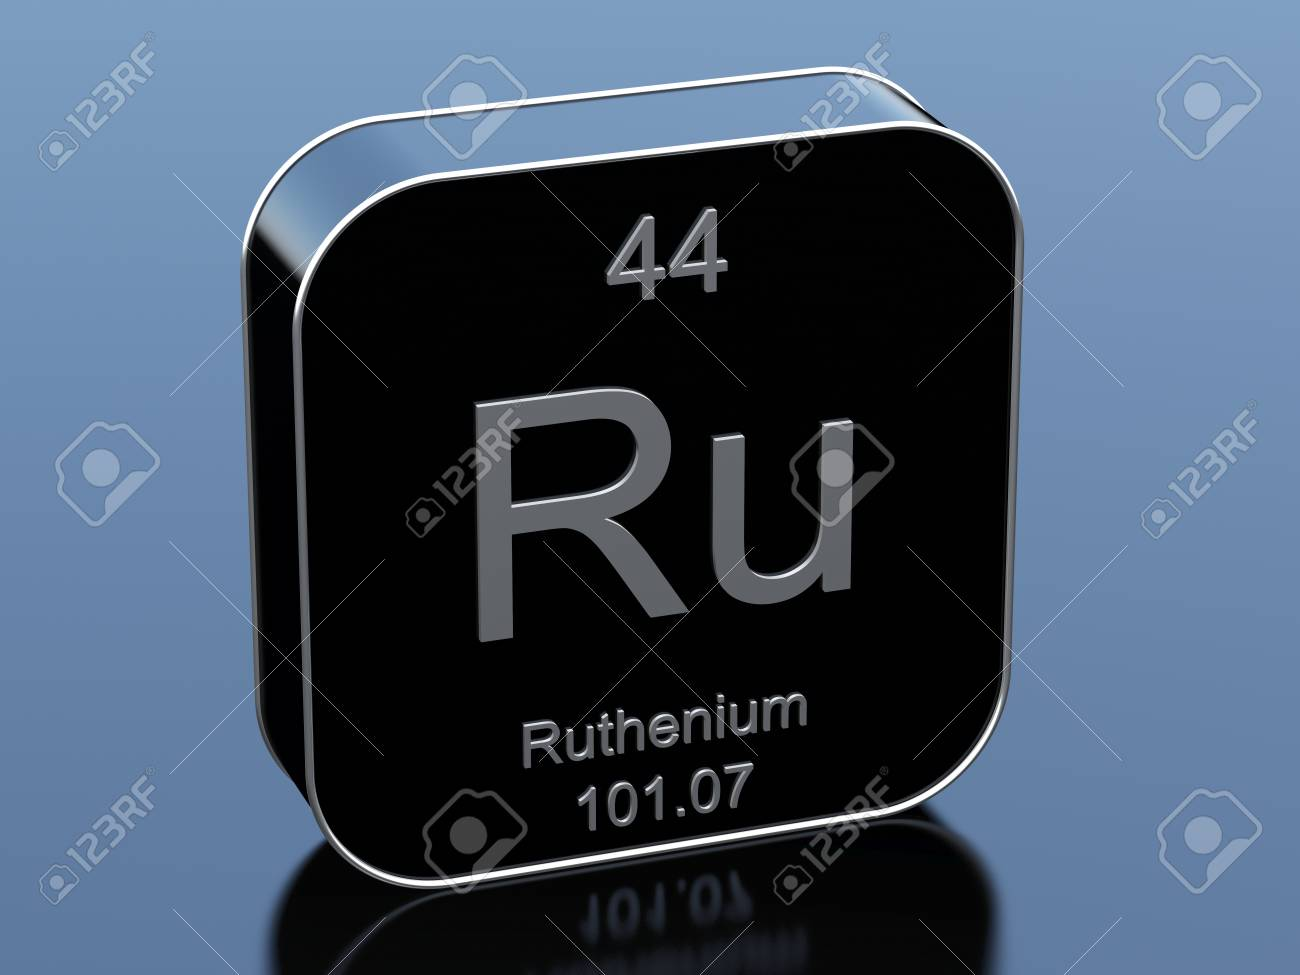 Ruthenium from periodic table stock photo picture and royalty ruthenium from periodic table stock photo 71643829 gamestrikefo Choice Image